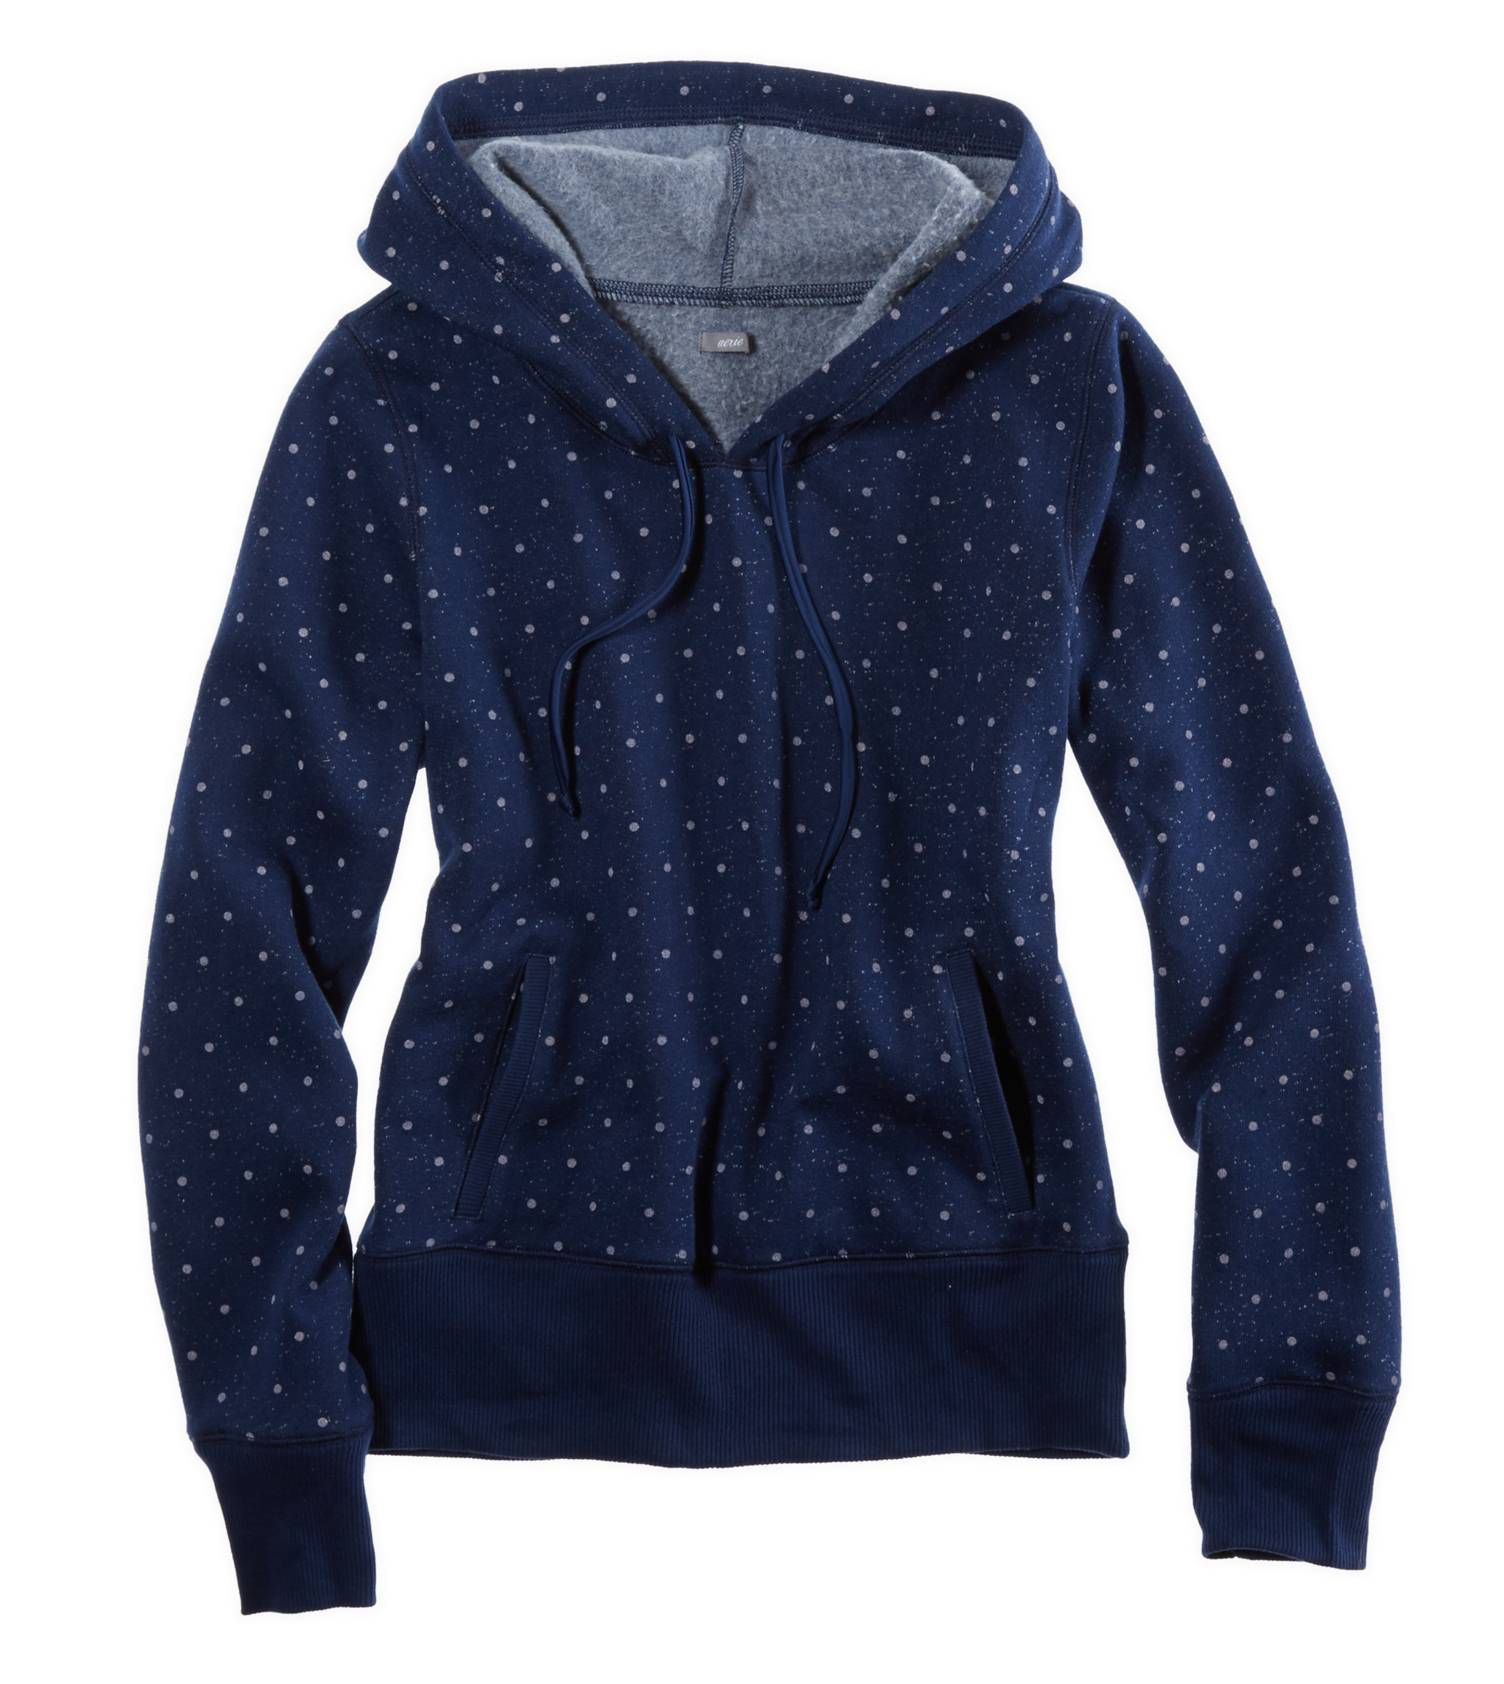 Aerie Cozy Hooded Sweatshirt | spinach & other cool things ...